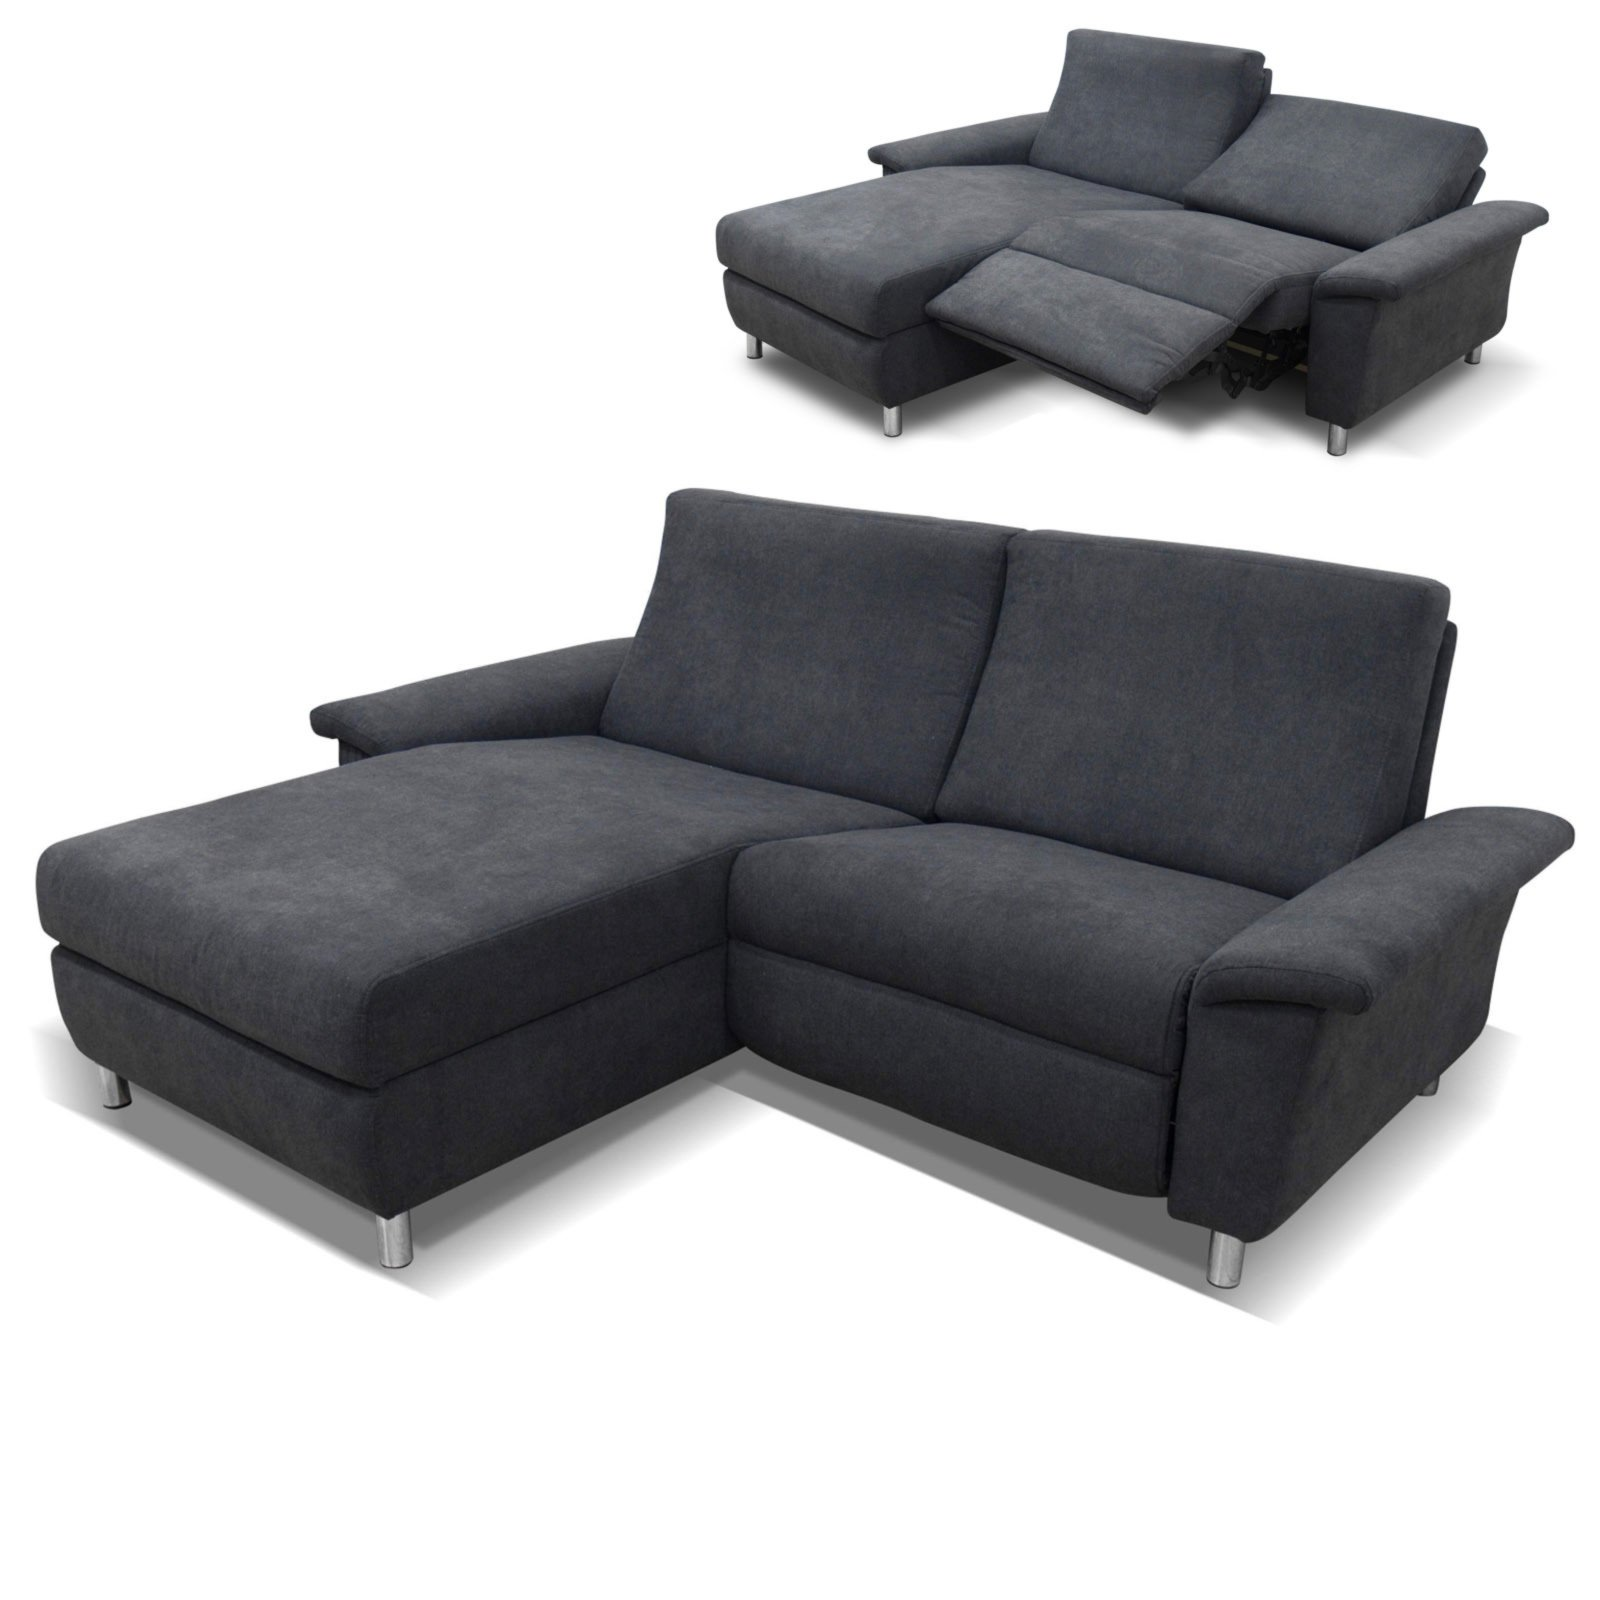 Ecksofa dunkelgrau recamiere links relaxfunktion for Ecksofa 3 00 m